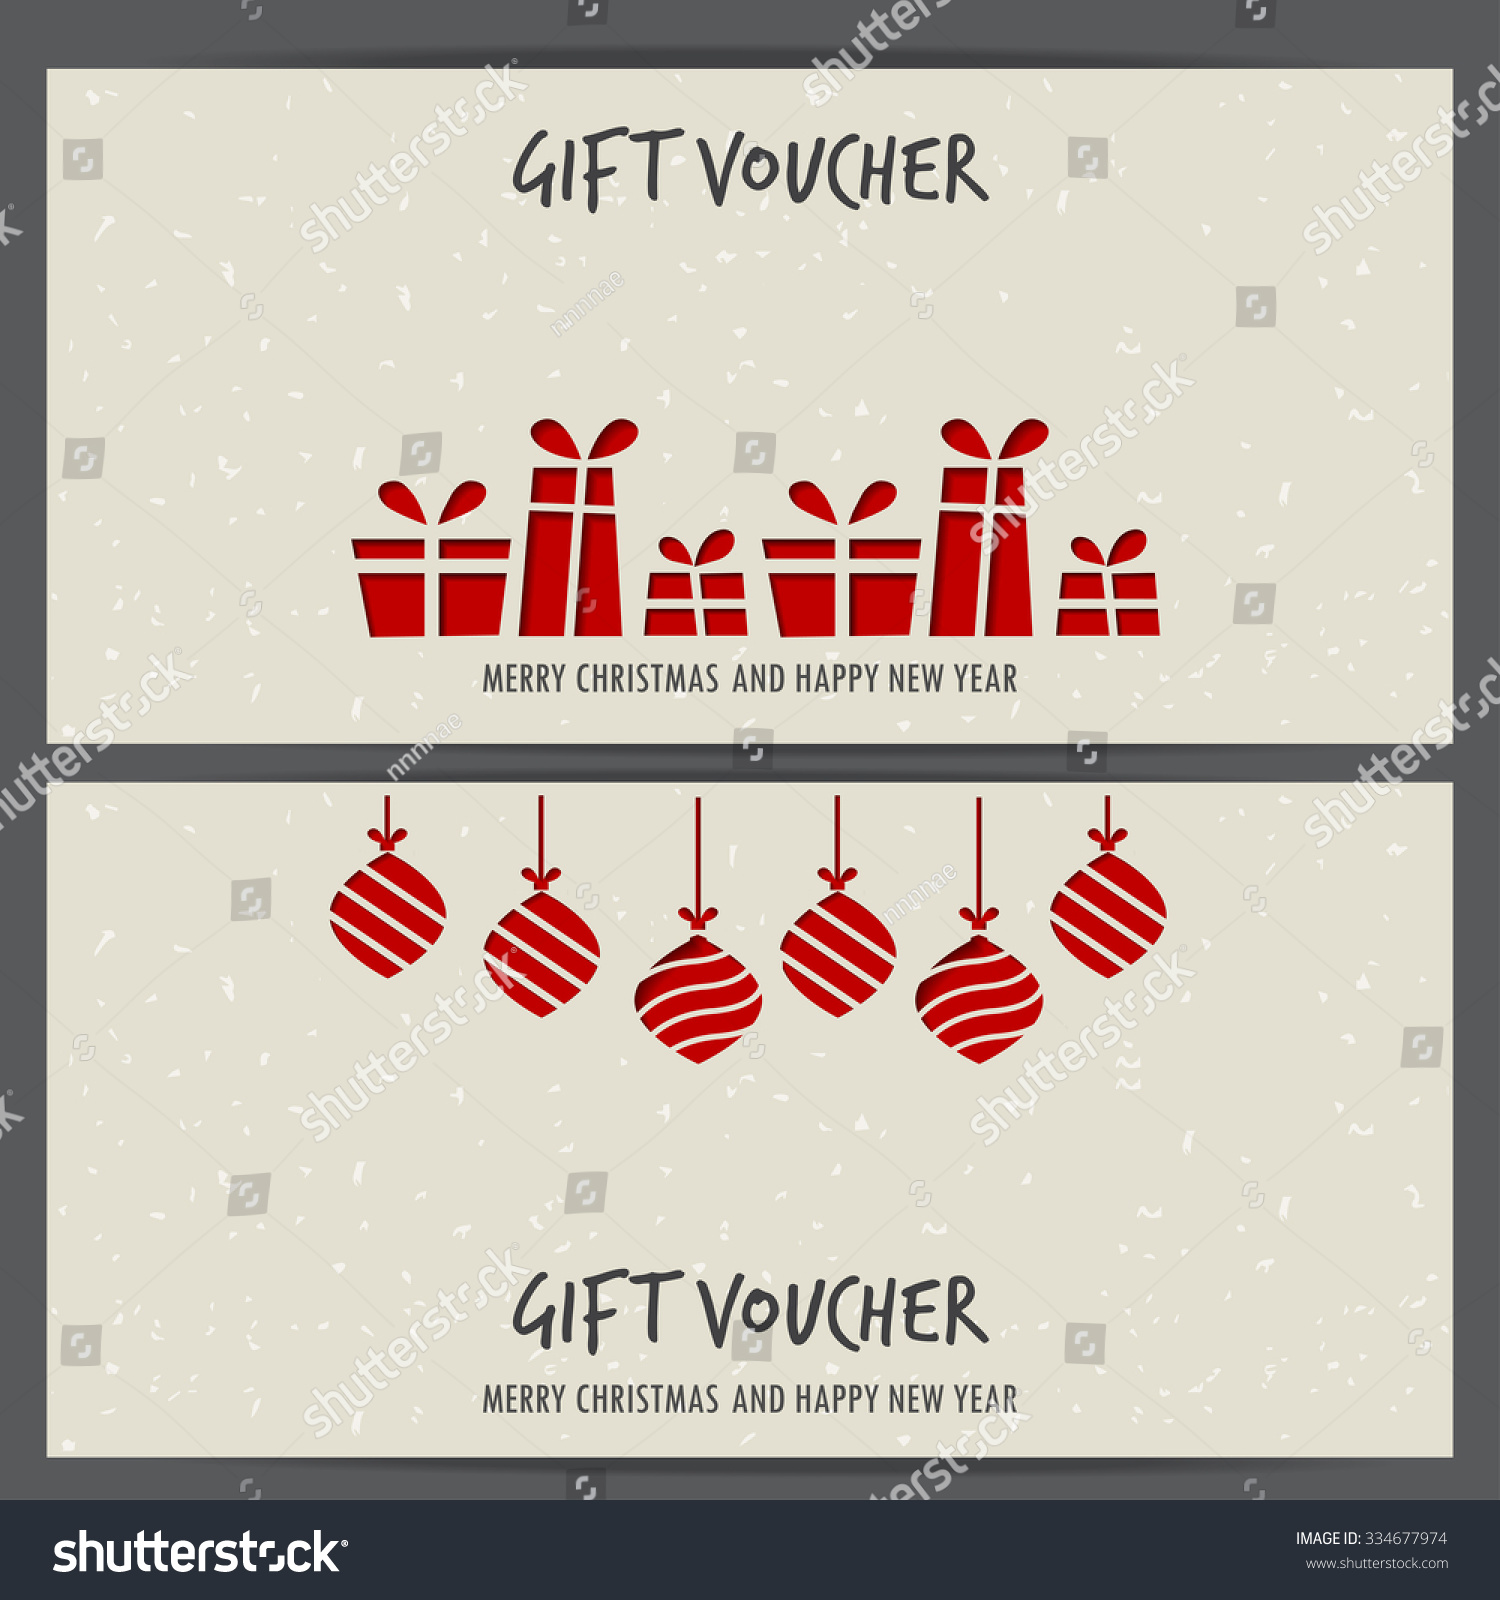 Image Result For Christmas Coupon Template